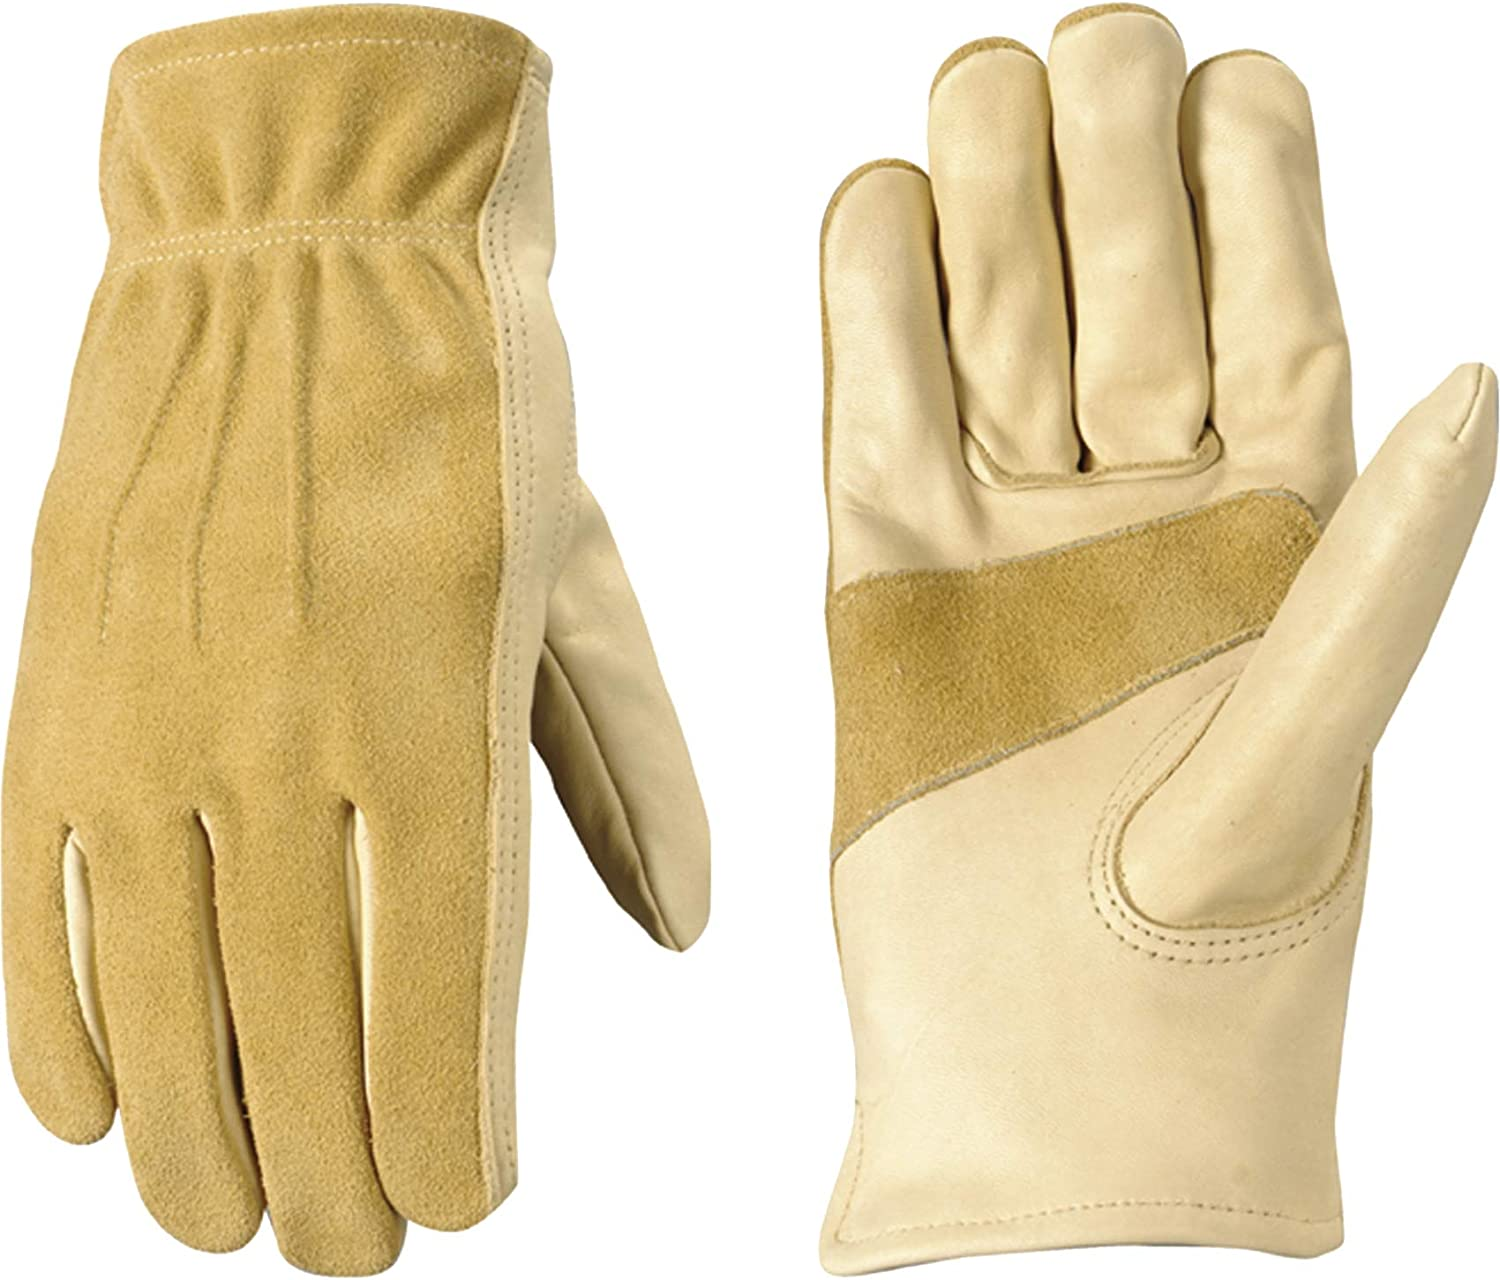 Women's Leather Work and Garden Gloves, Heavy Duty Grain Cowhide, Large (Wells Lamont 1124L),Natural